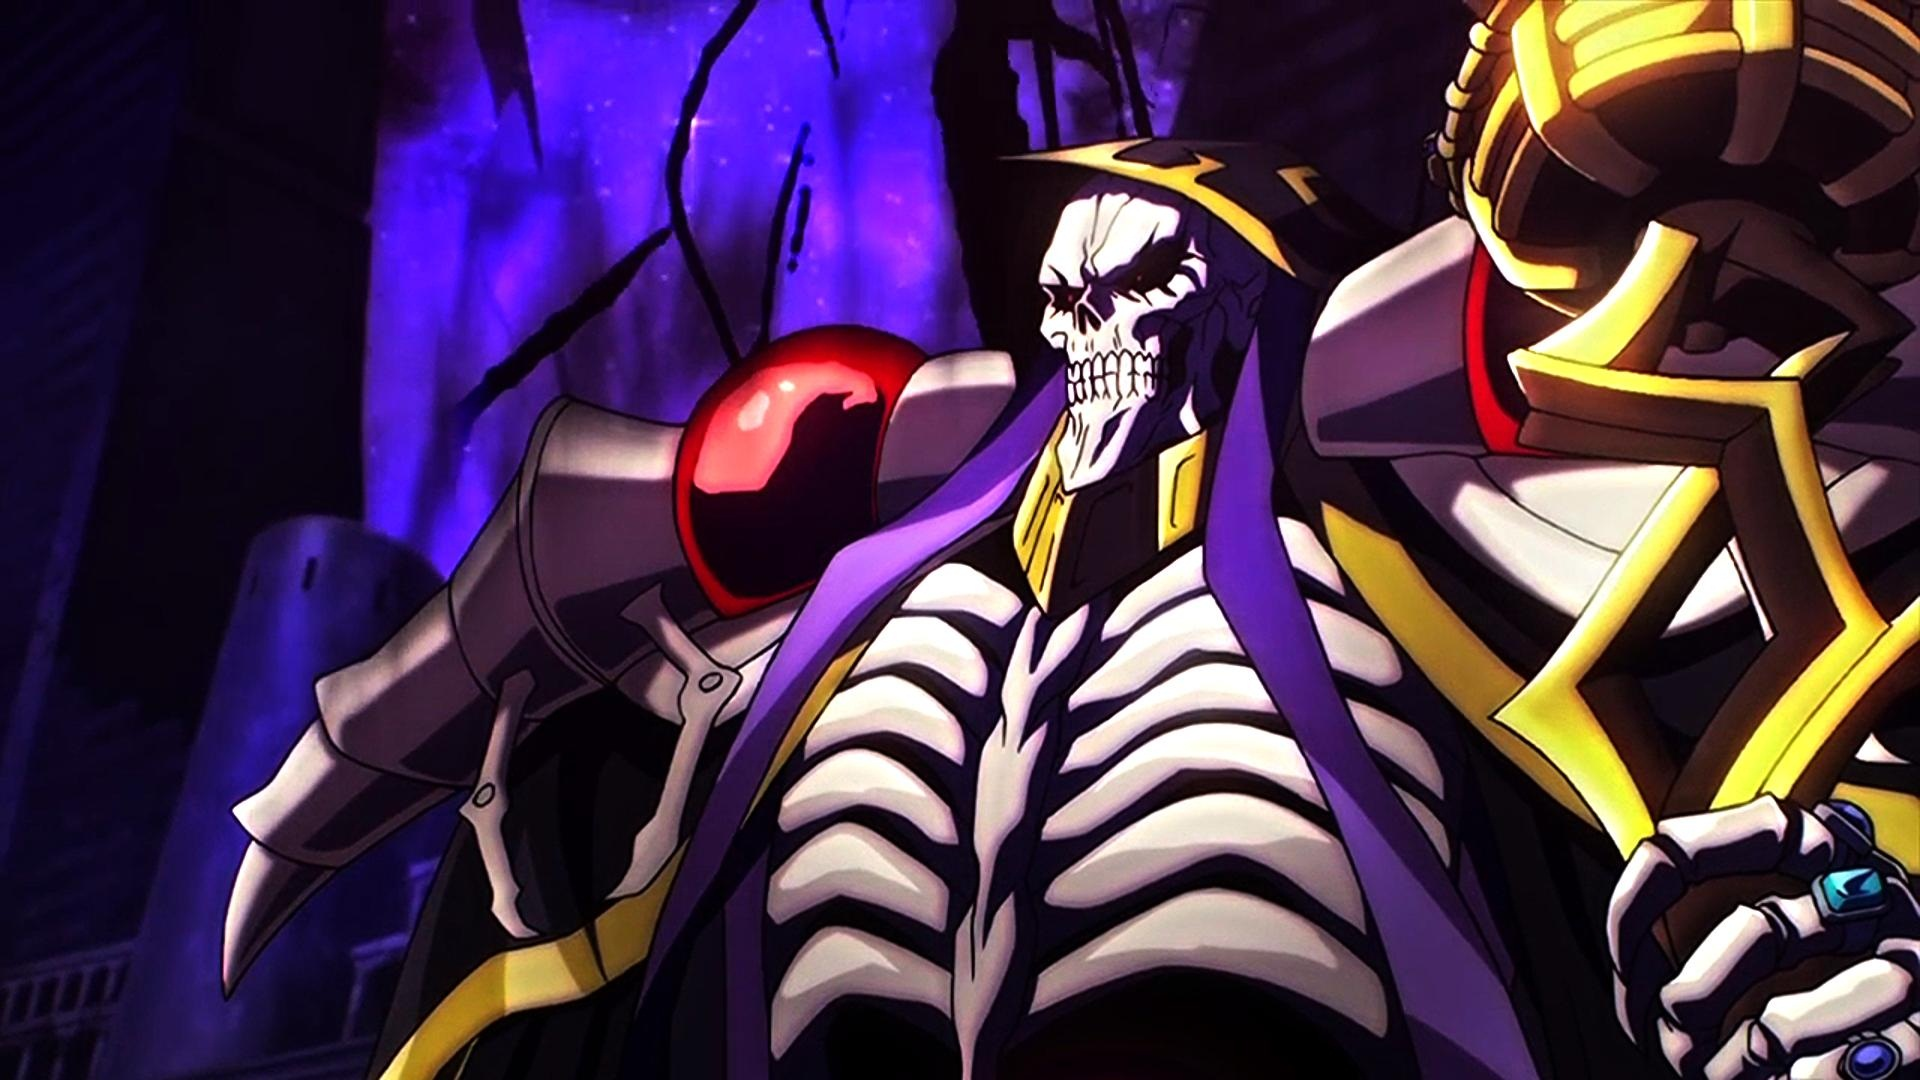 Overlord Hd Wallpaper Ainz Ooal Gown 965199 Hd Wallpaper Backgrounds Download